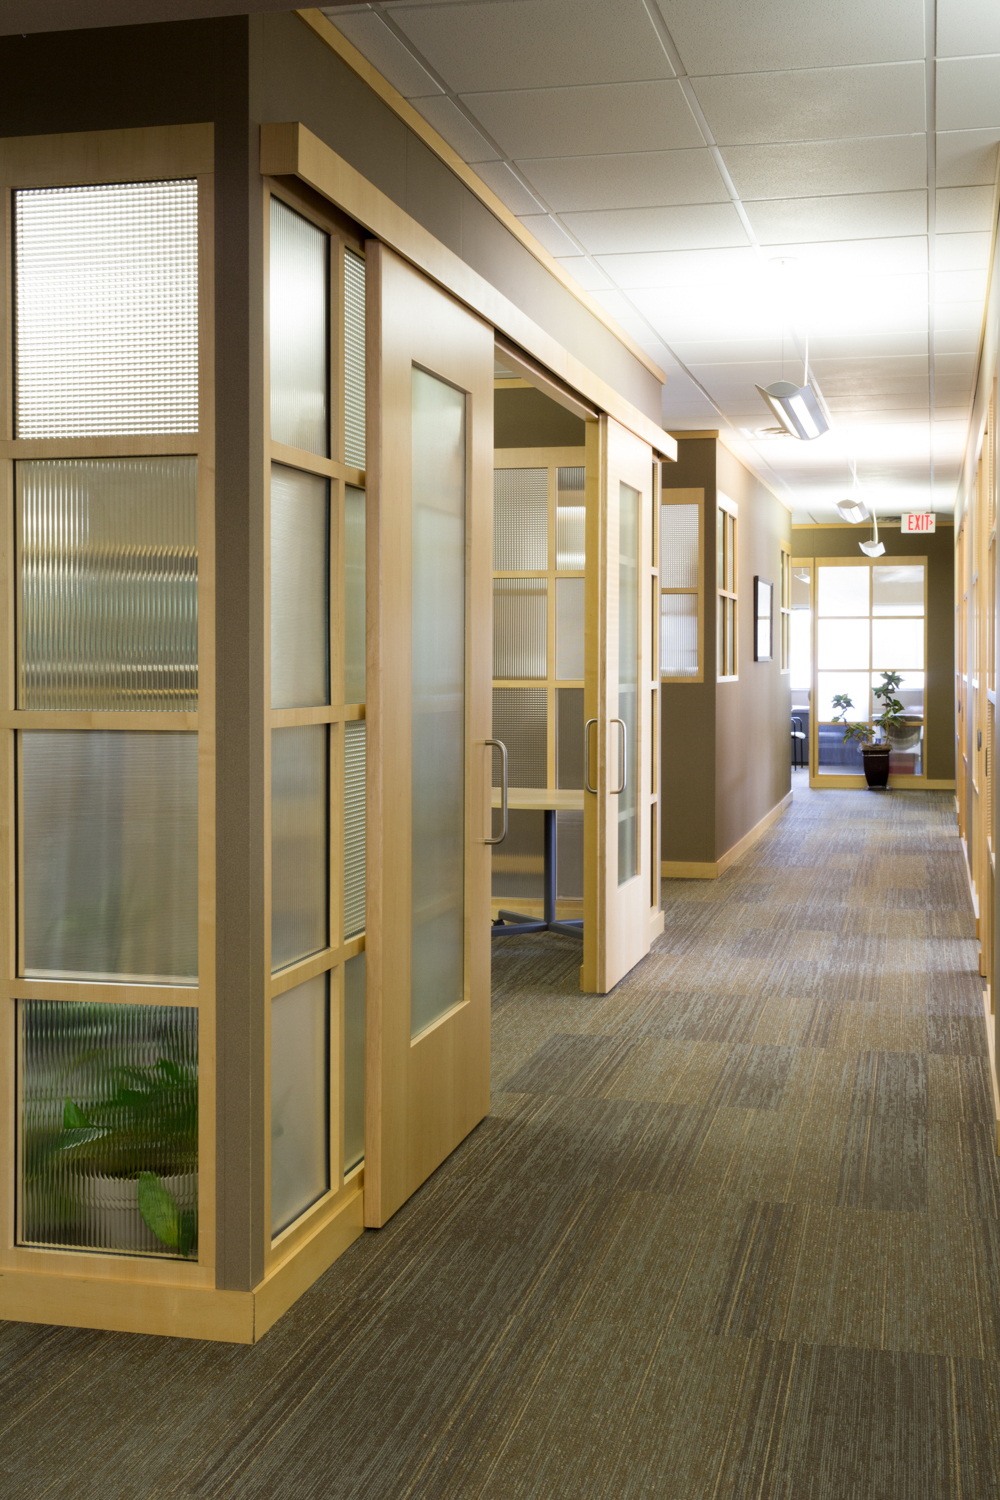 Textured glass walls let natural light flood into this hallway in the First Dakota Title office in Sioux Falls, South Dakota.